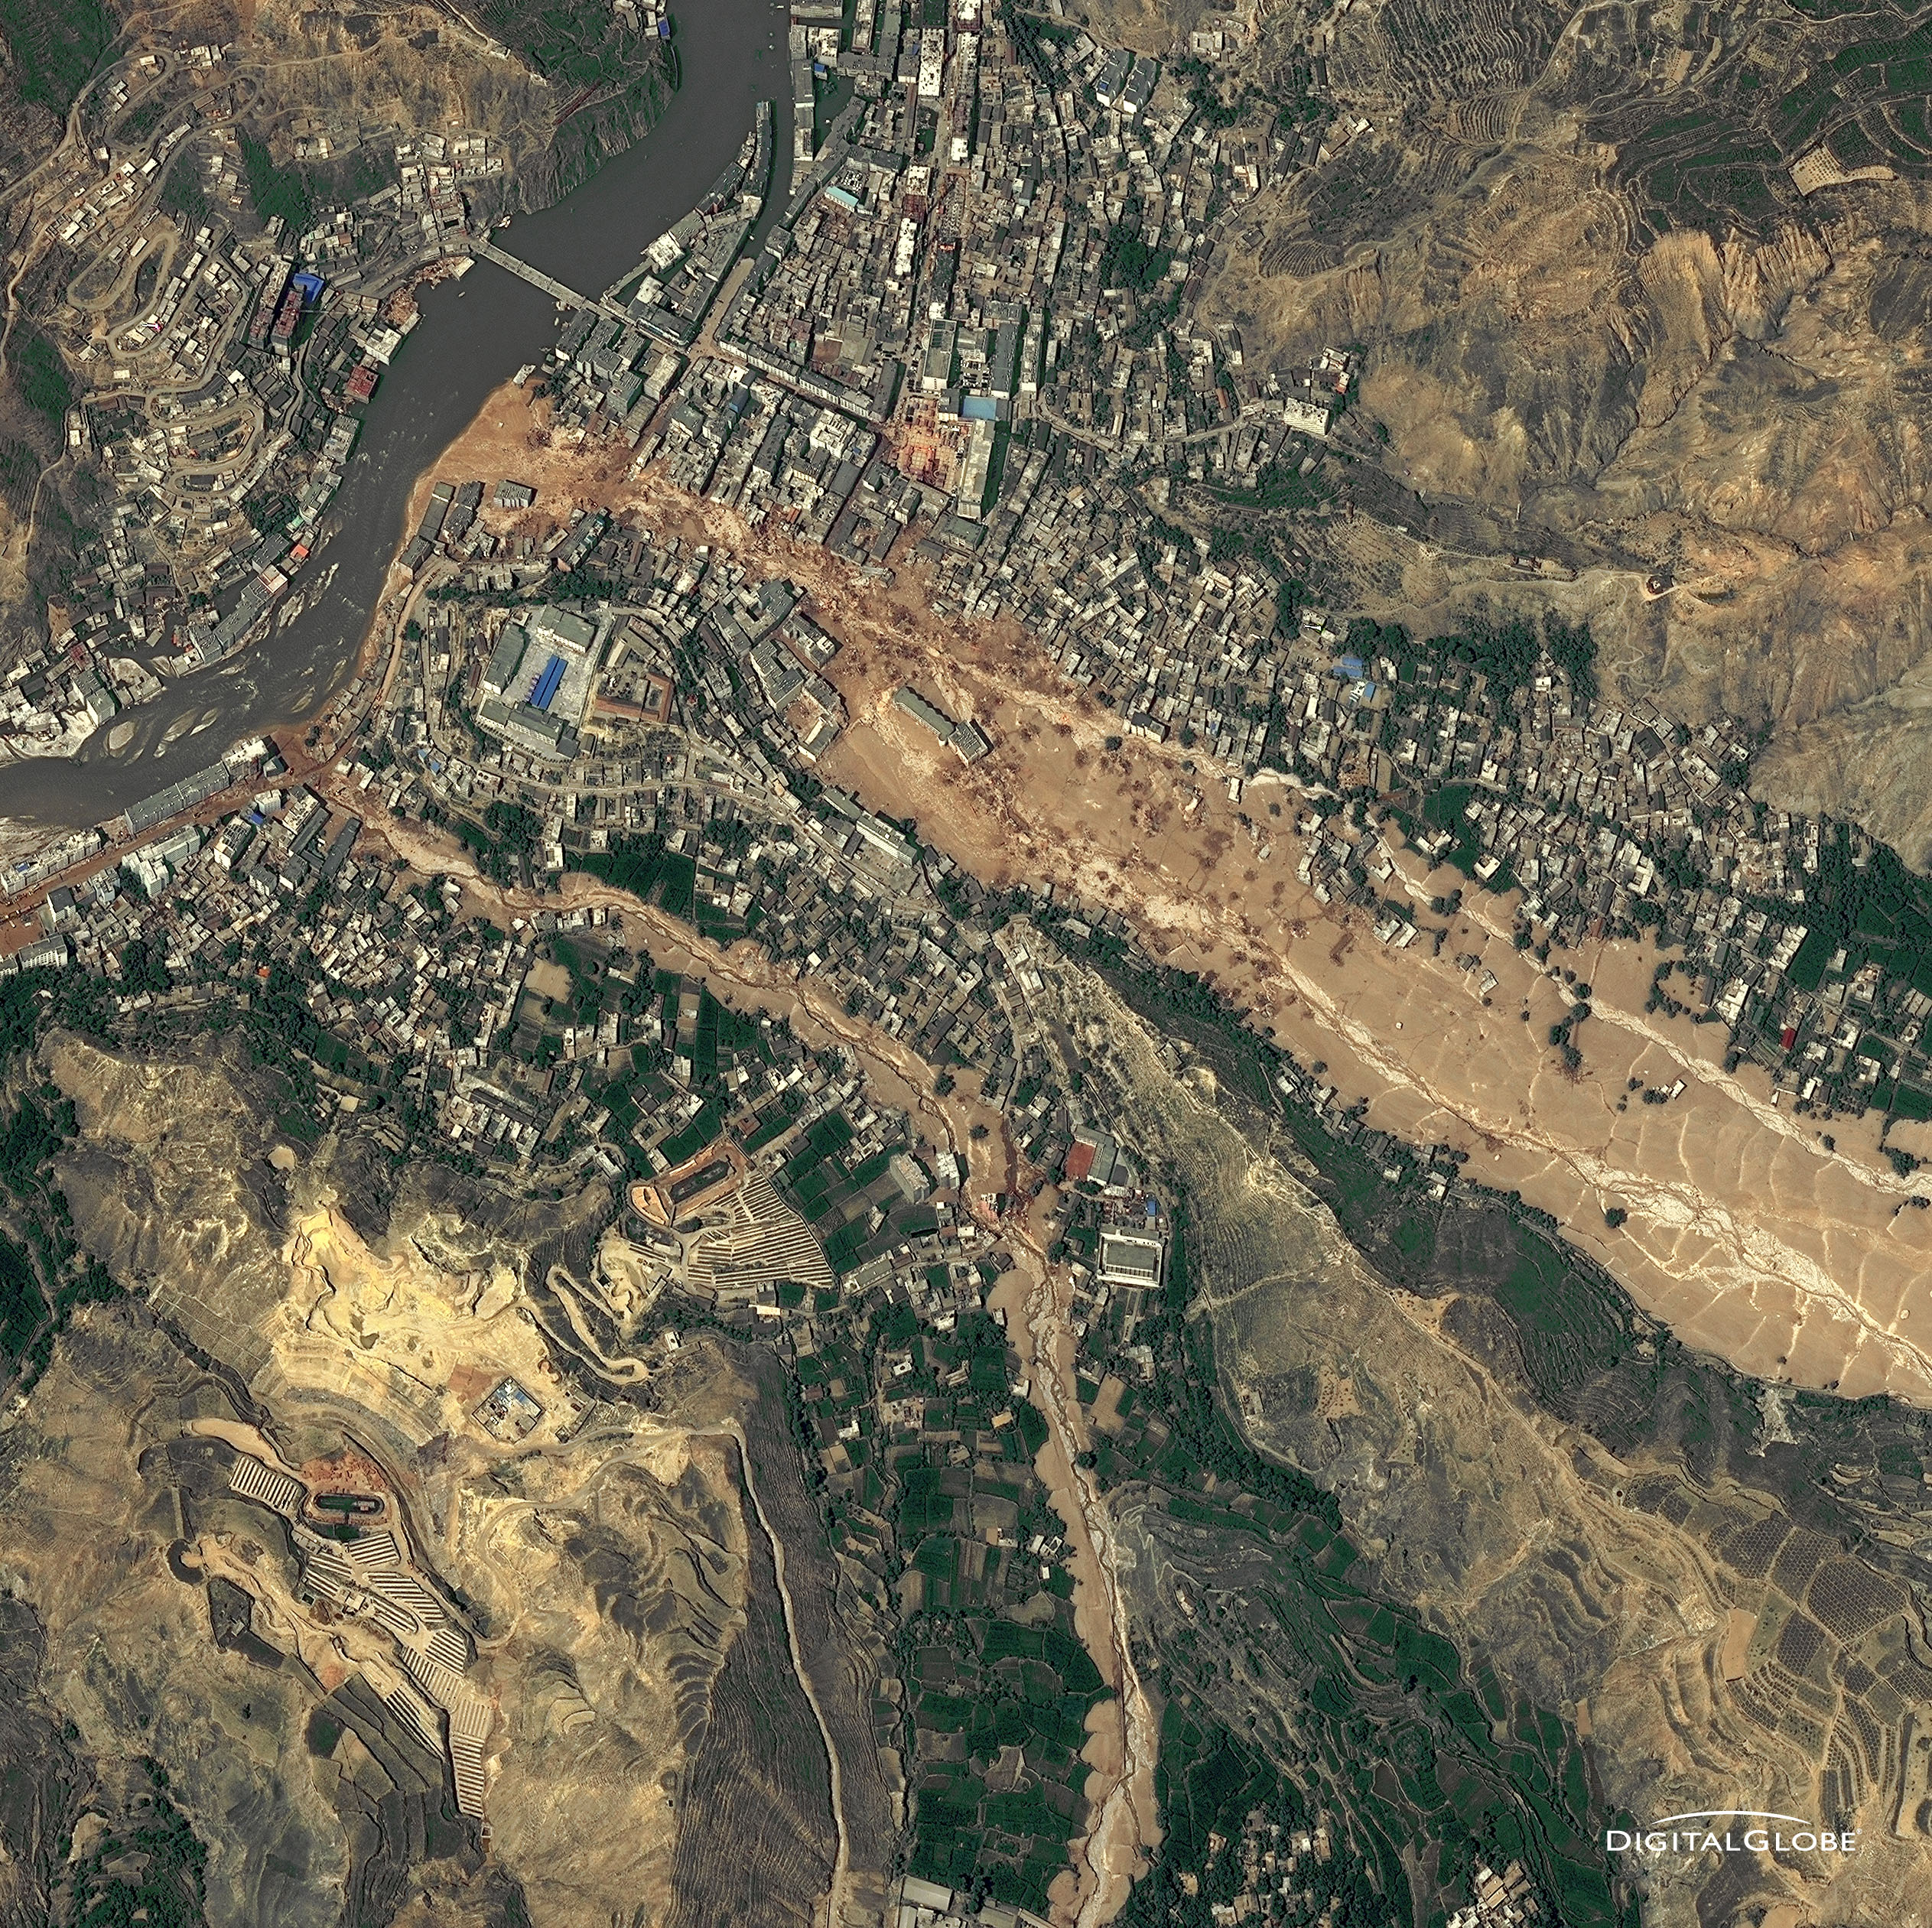 landslide in china essay Landslide causes tsunami on the daning river in chongqing, china a huge landslide has triggered a tsunami on the daning river (a tributary of the yangtze) in wushan county in yangqing municipality, china.